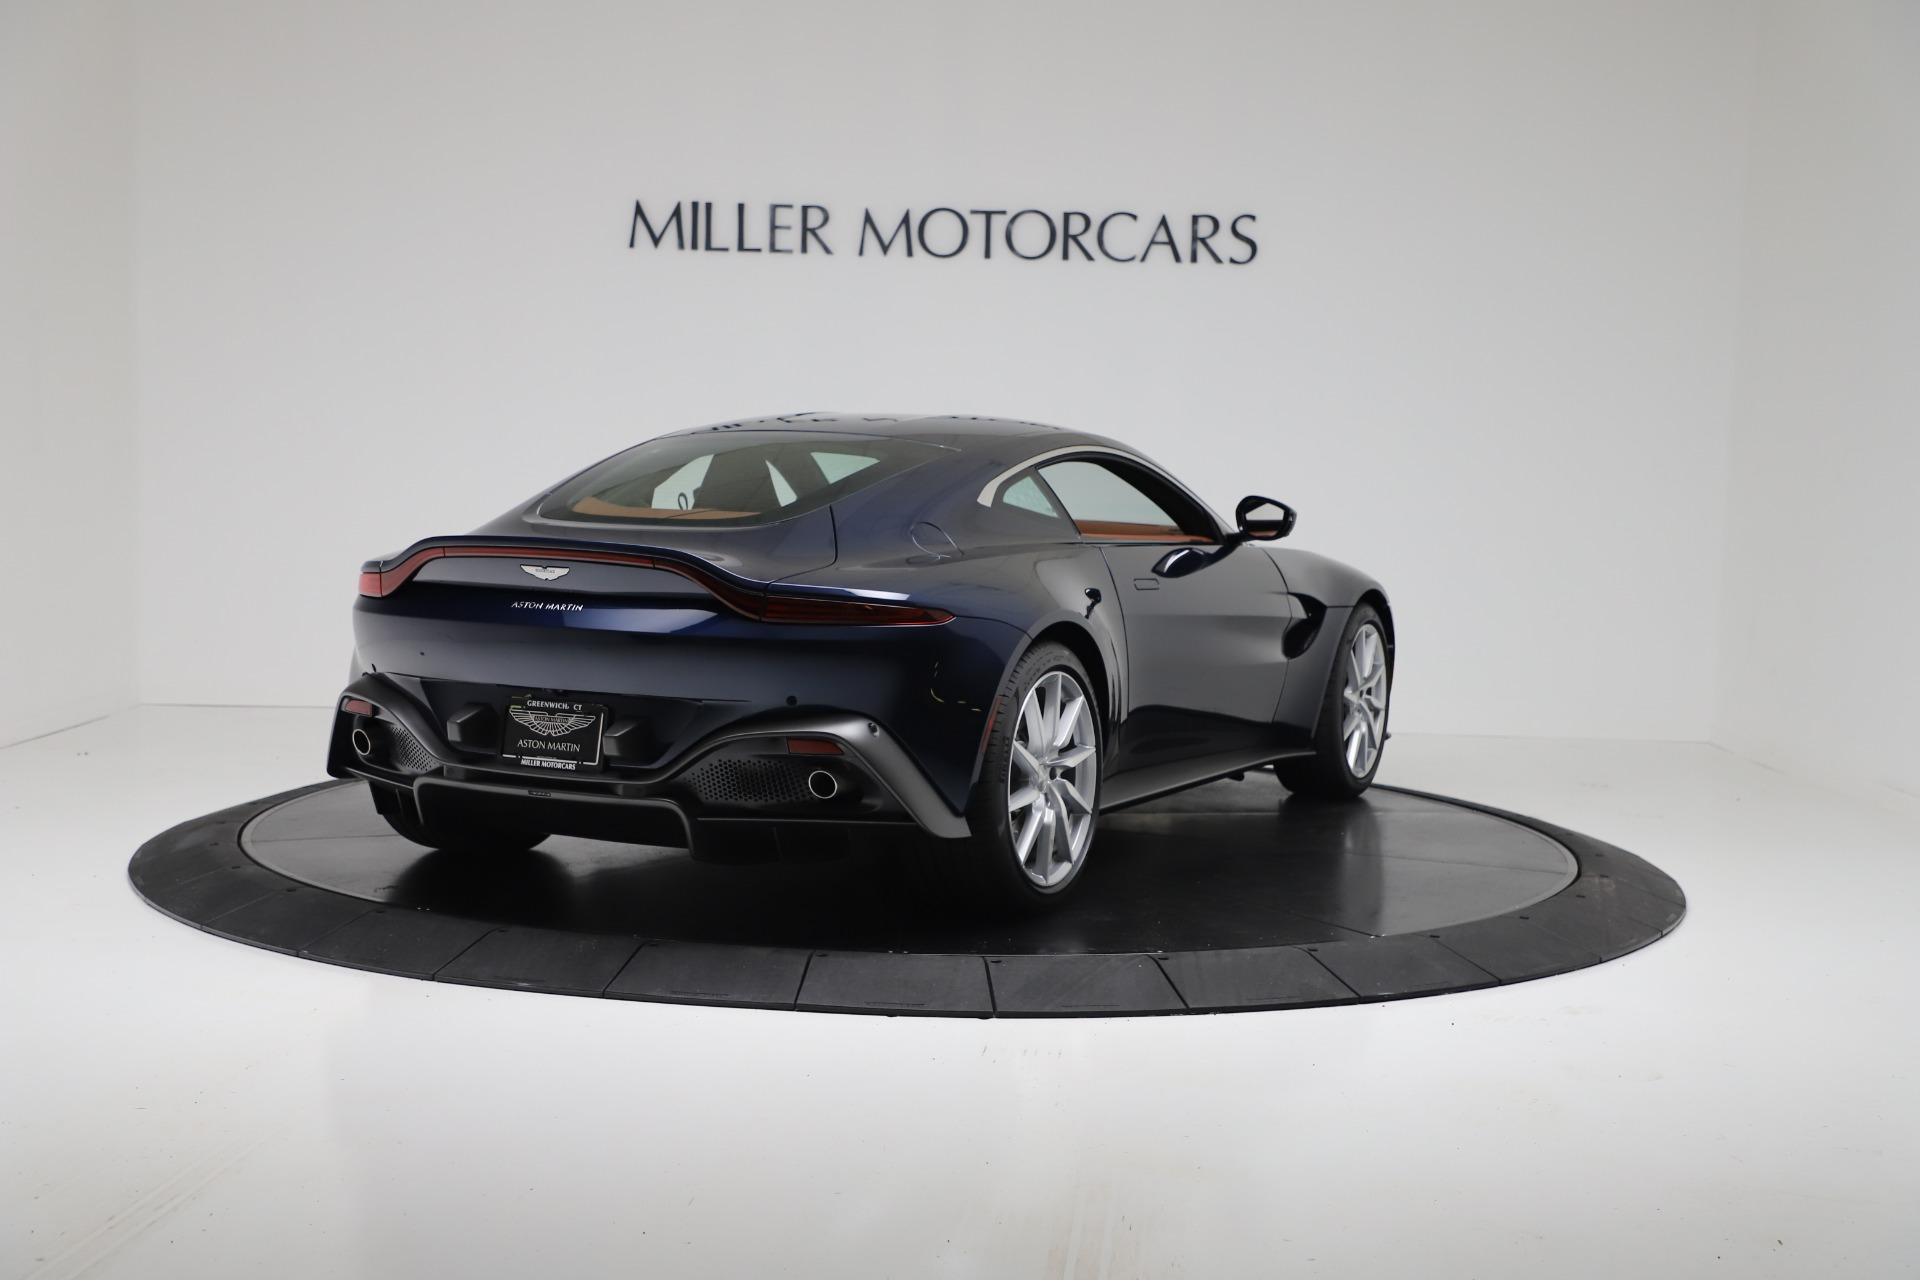 New 2020 Aston Martin Vantage V8 For Sale In Westport, CT 3378_p6